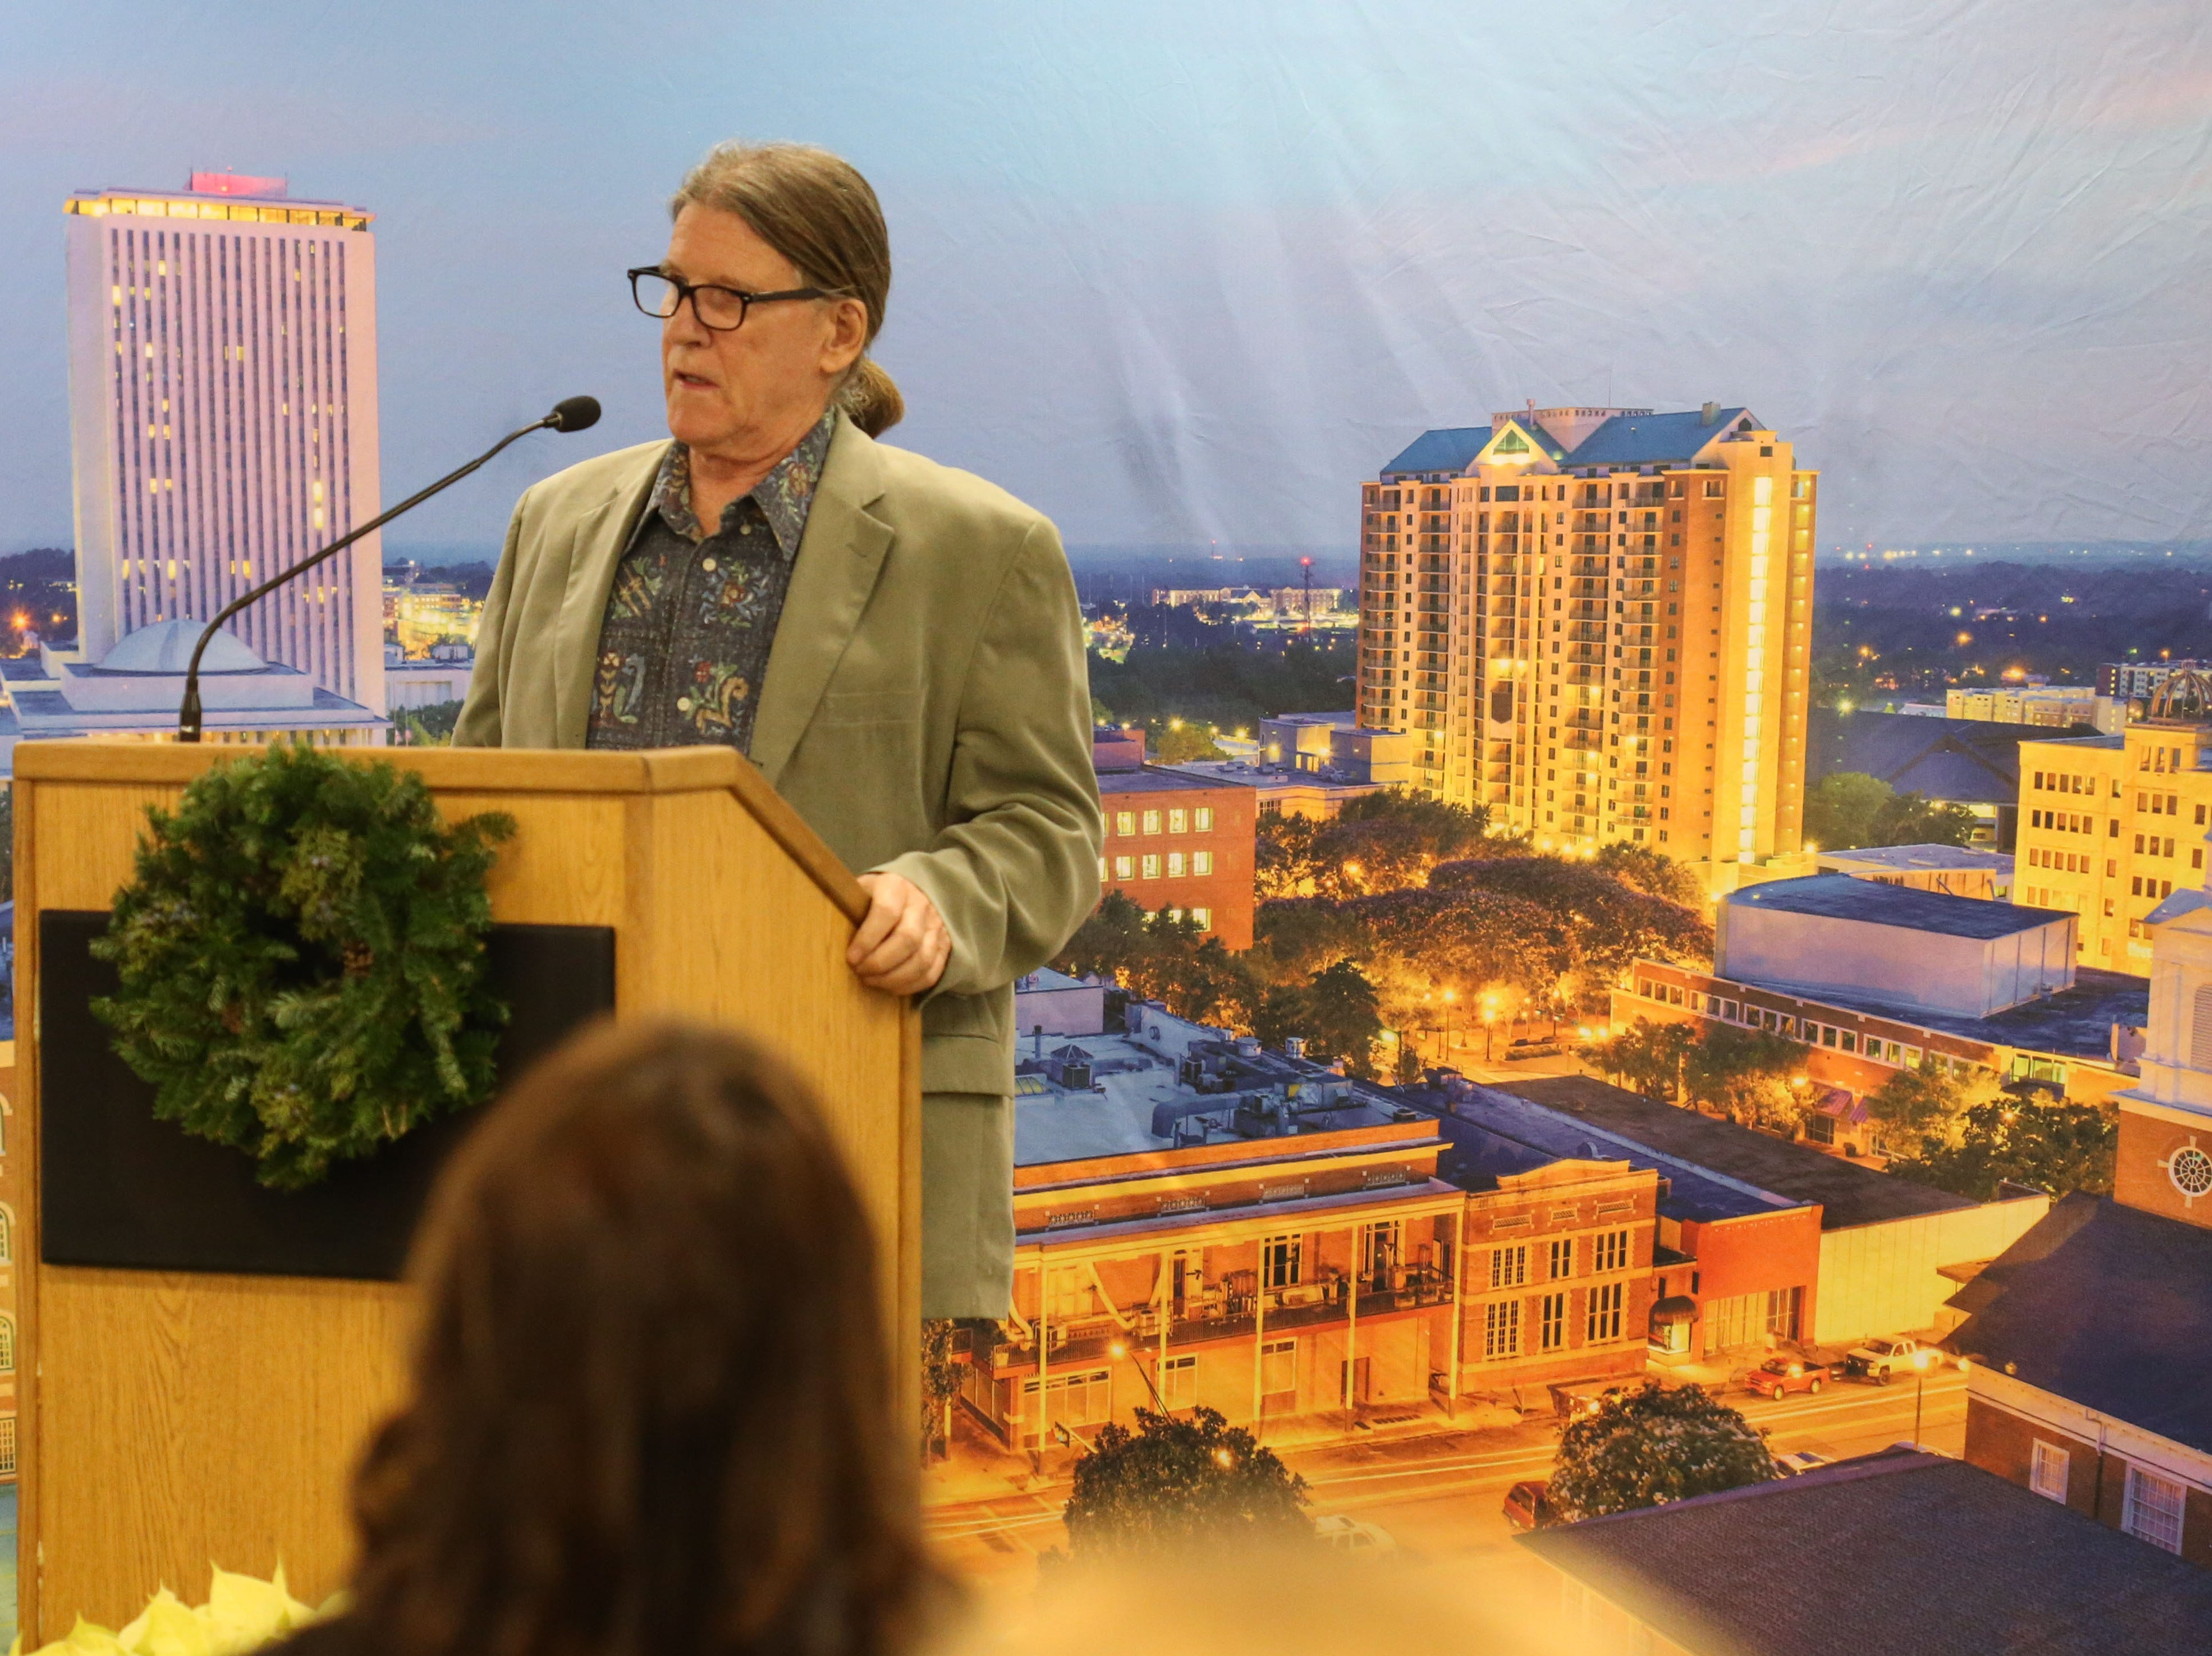 Mike Ferrara, owner of Cabo's Island Grill & Bar, speaks at a launch party held at the Tallahassee Democrat for Gerald Ensley's book, 'We Found Paradise,' Thursday, Dec. 6, 2018.